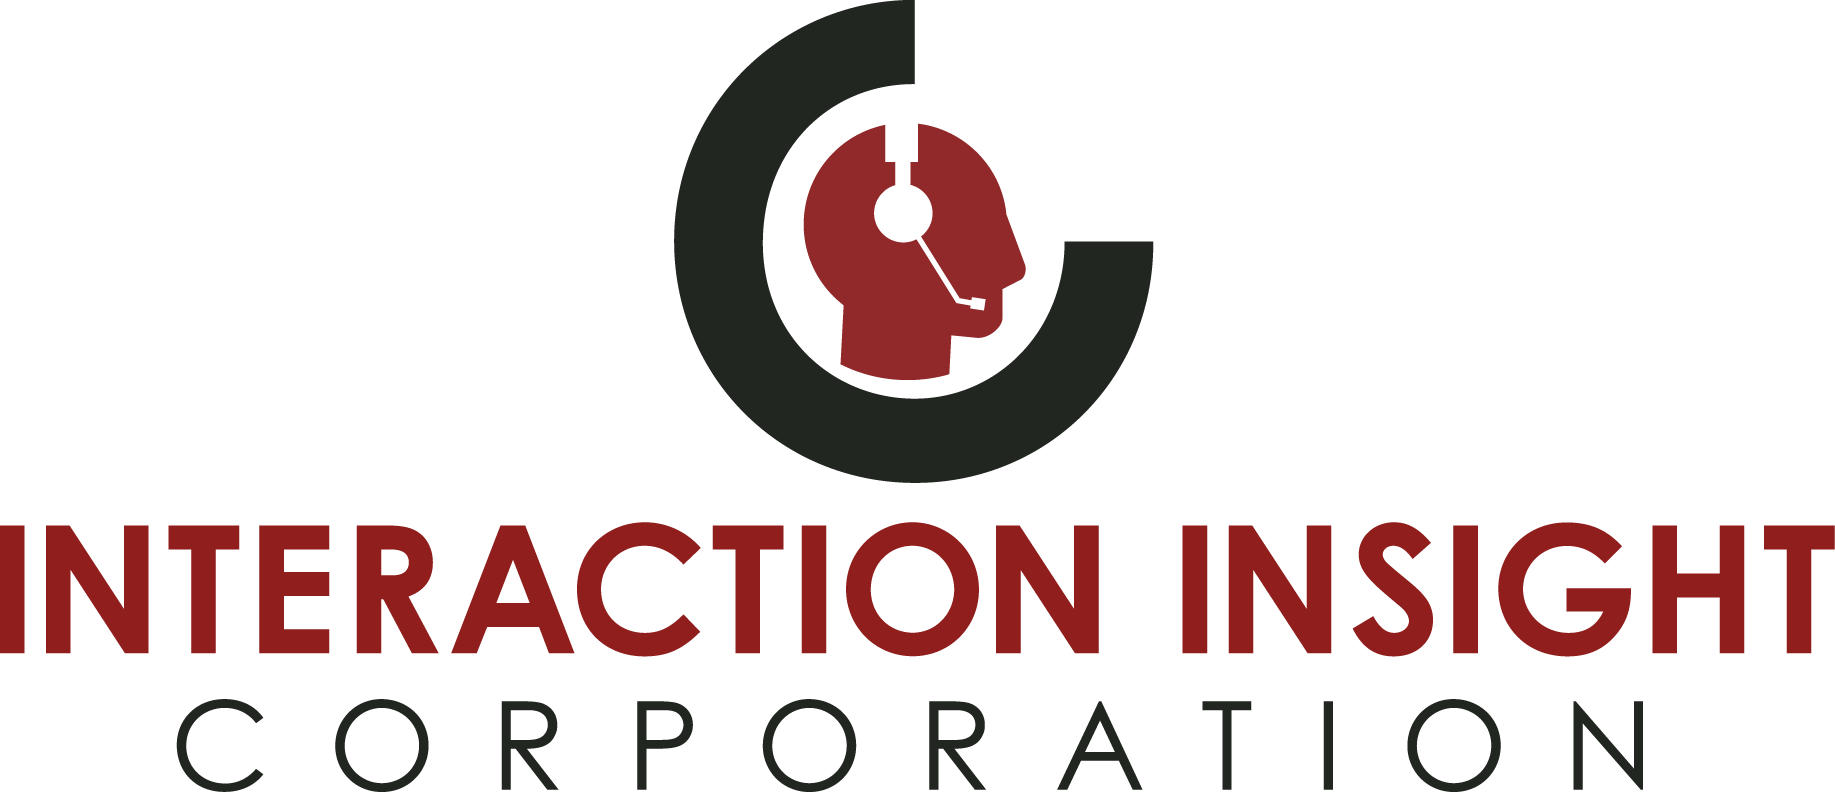 Interaction Insight Corporation